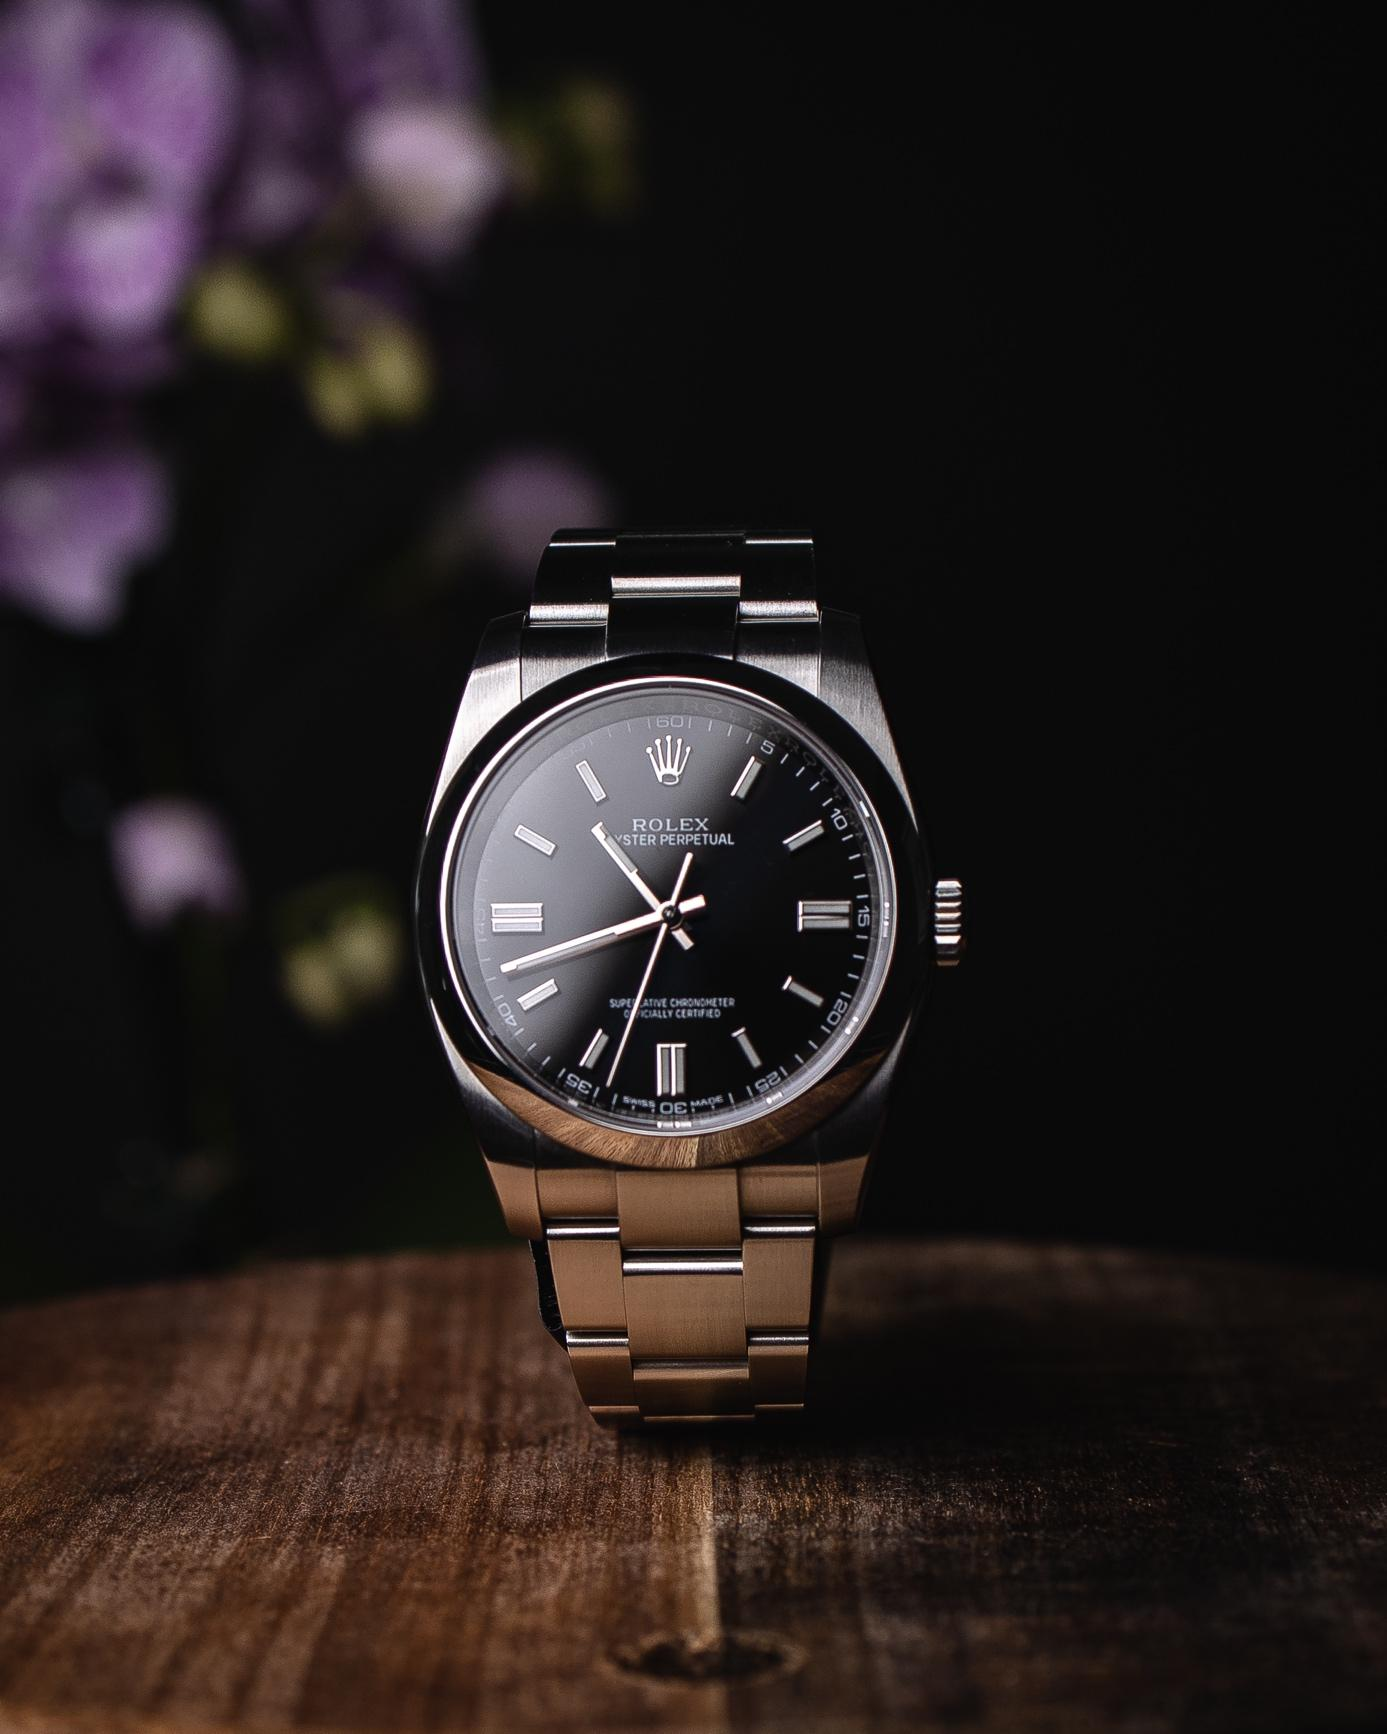 A watch on a wooden surface  Description automatically generated with medium confidence